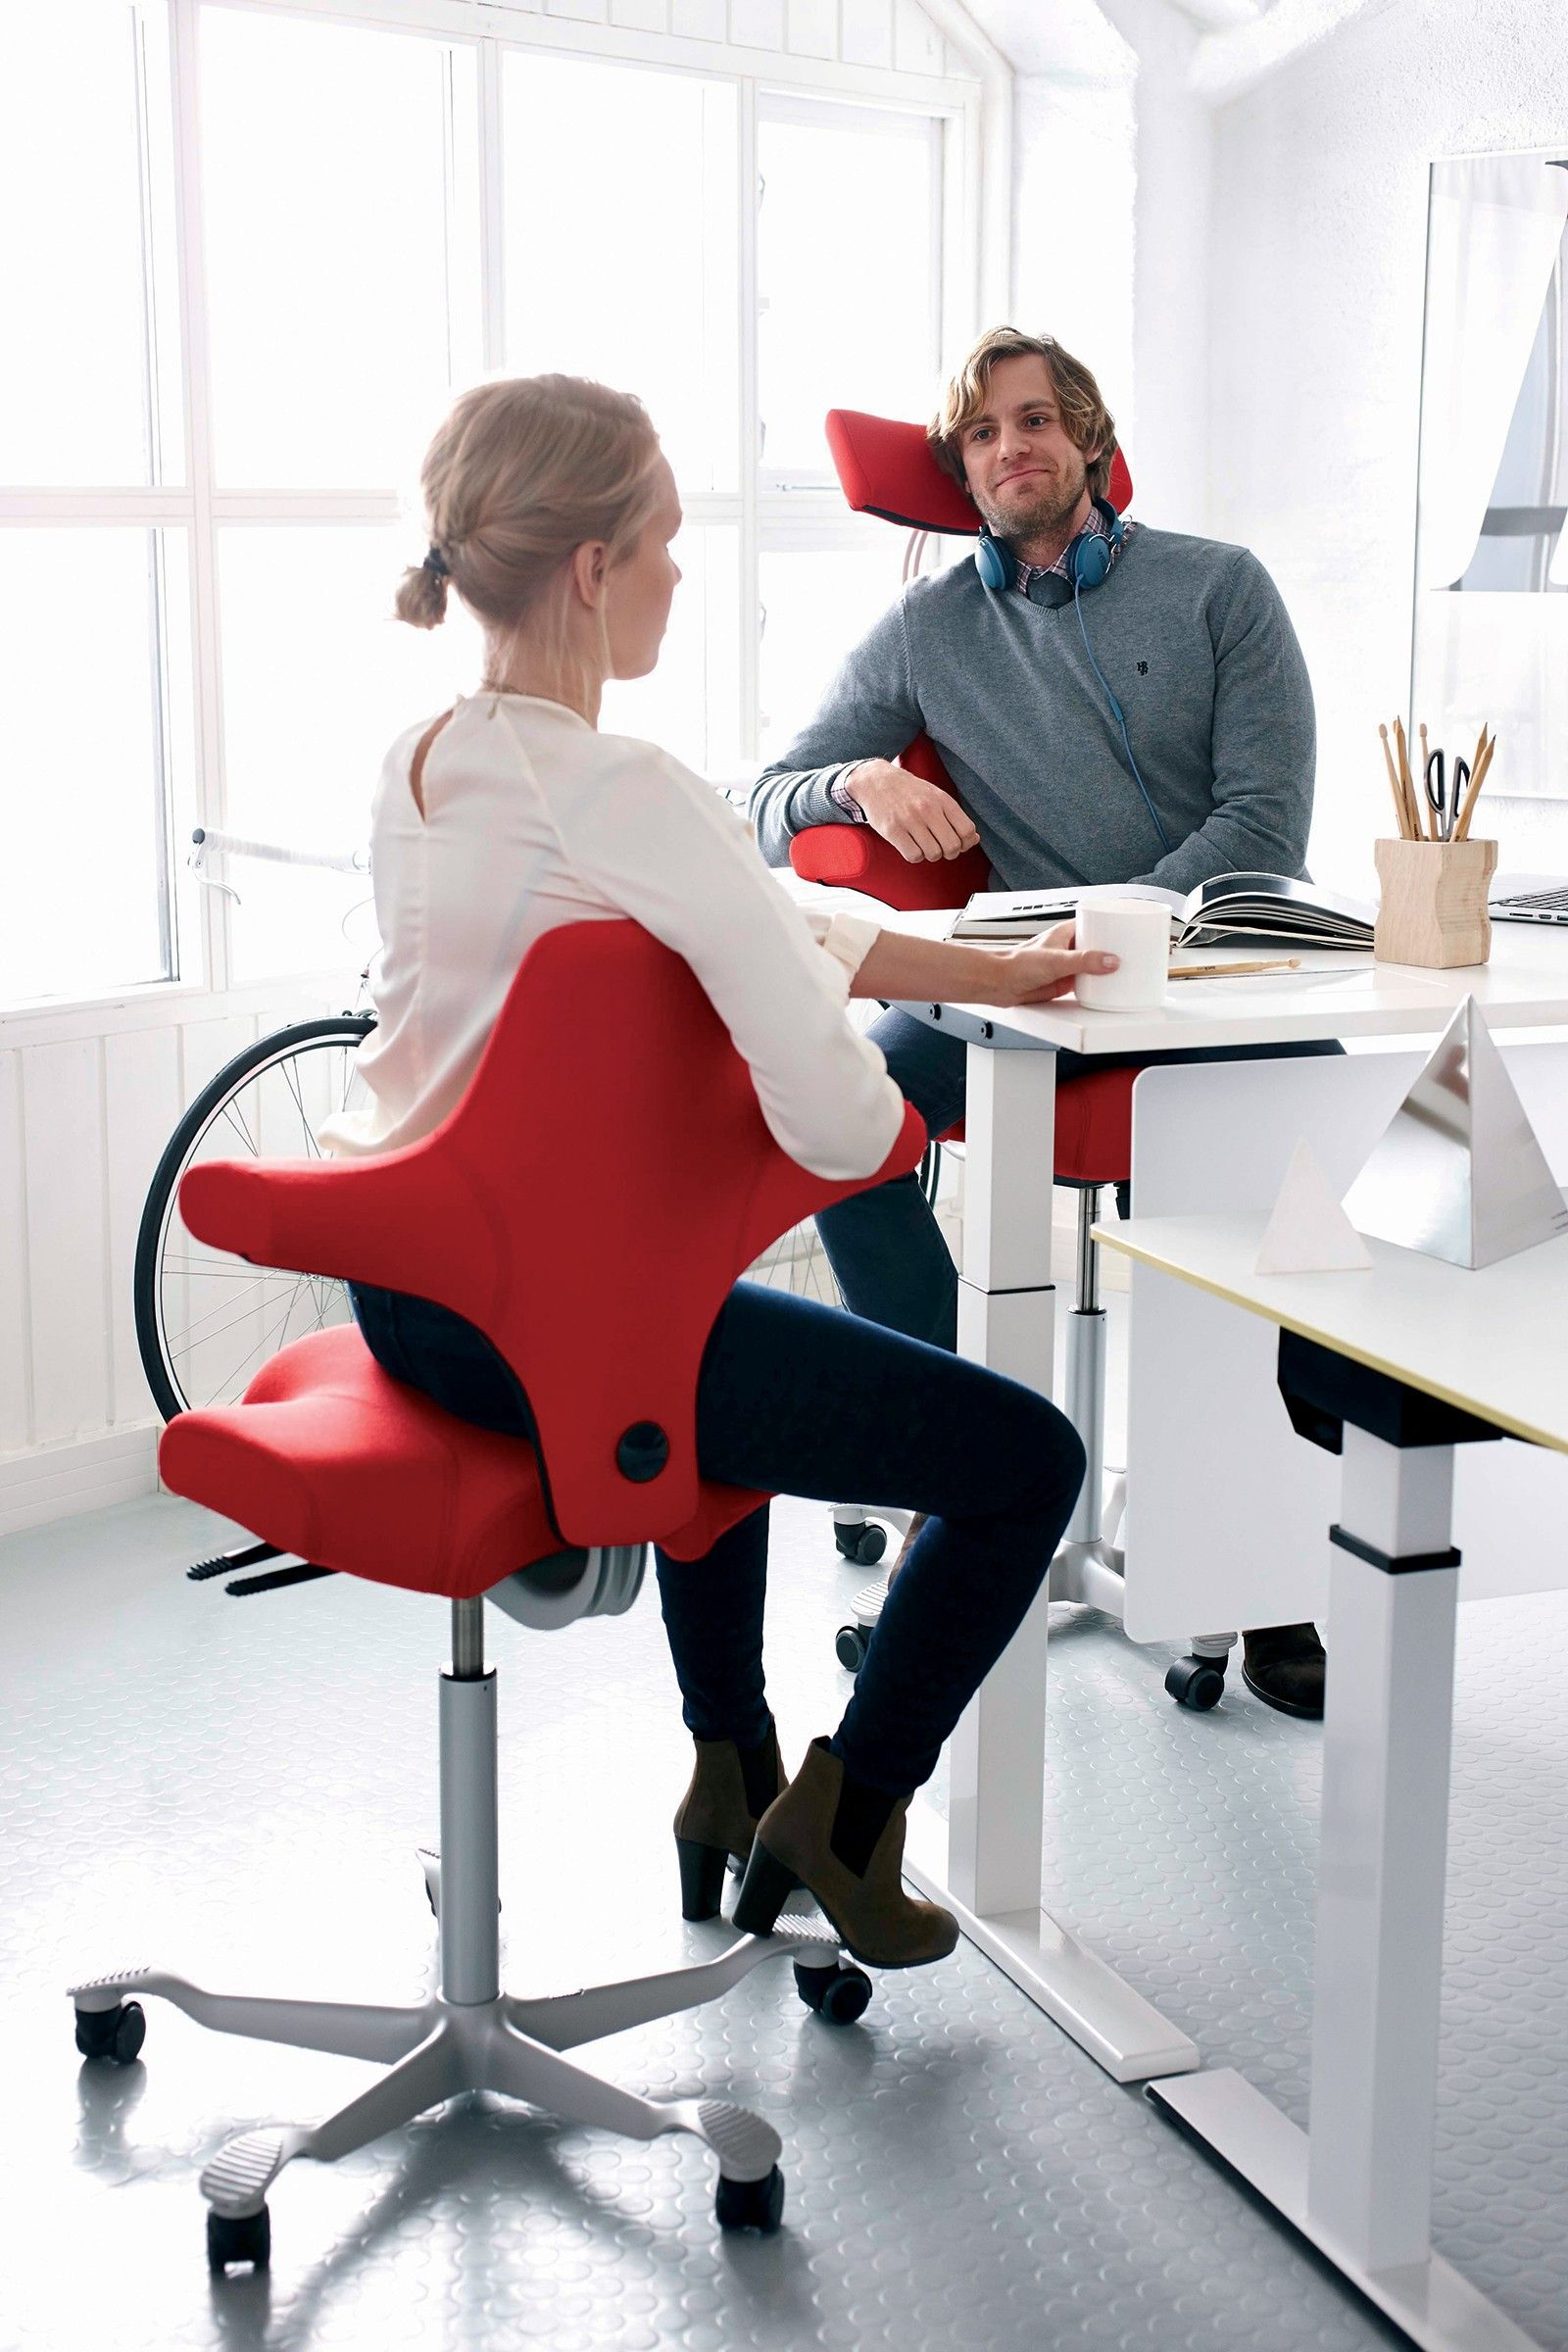 Hag Saddle Chair With Headrest Capisco H8107 Best Office Chair Best Computer Chairs Capisco Chair